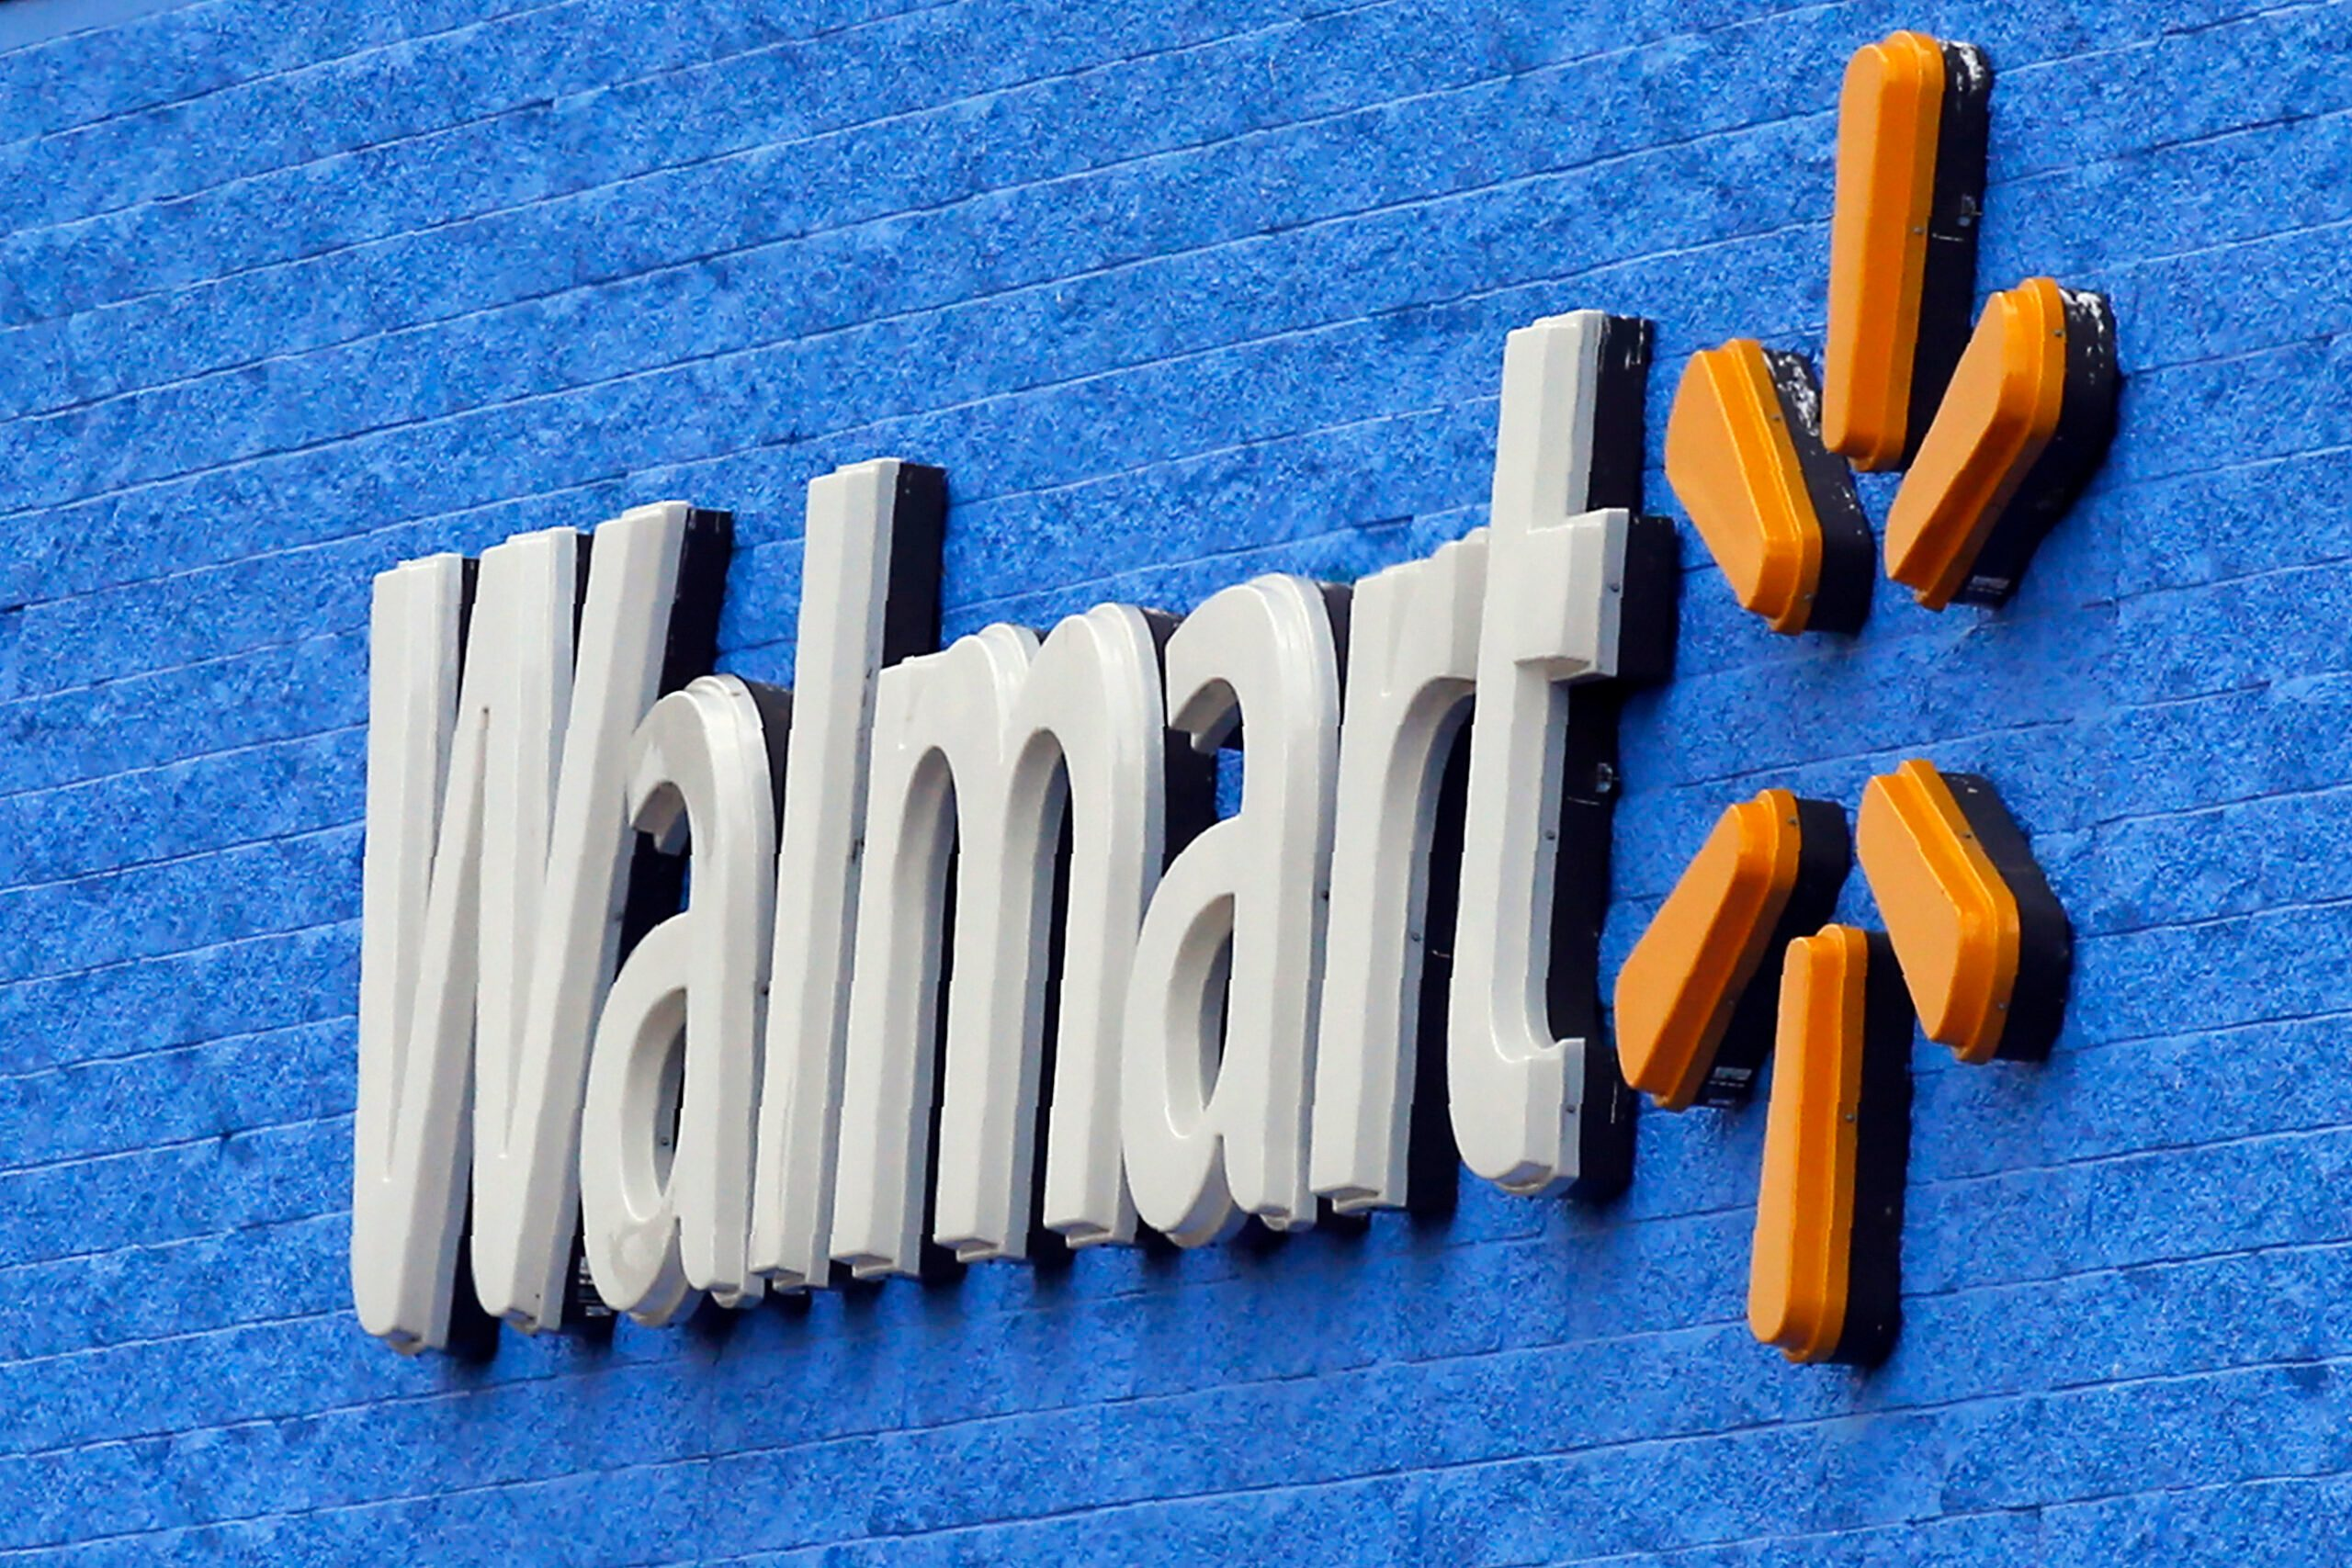 Walmart to Build More Robot-Filled Warehouses at Stores - snopes